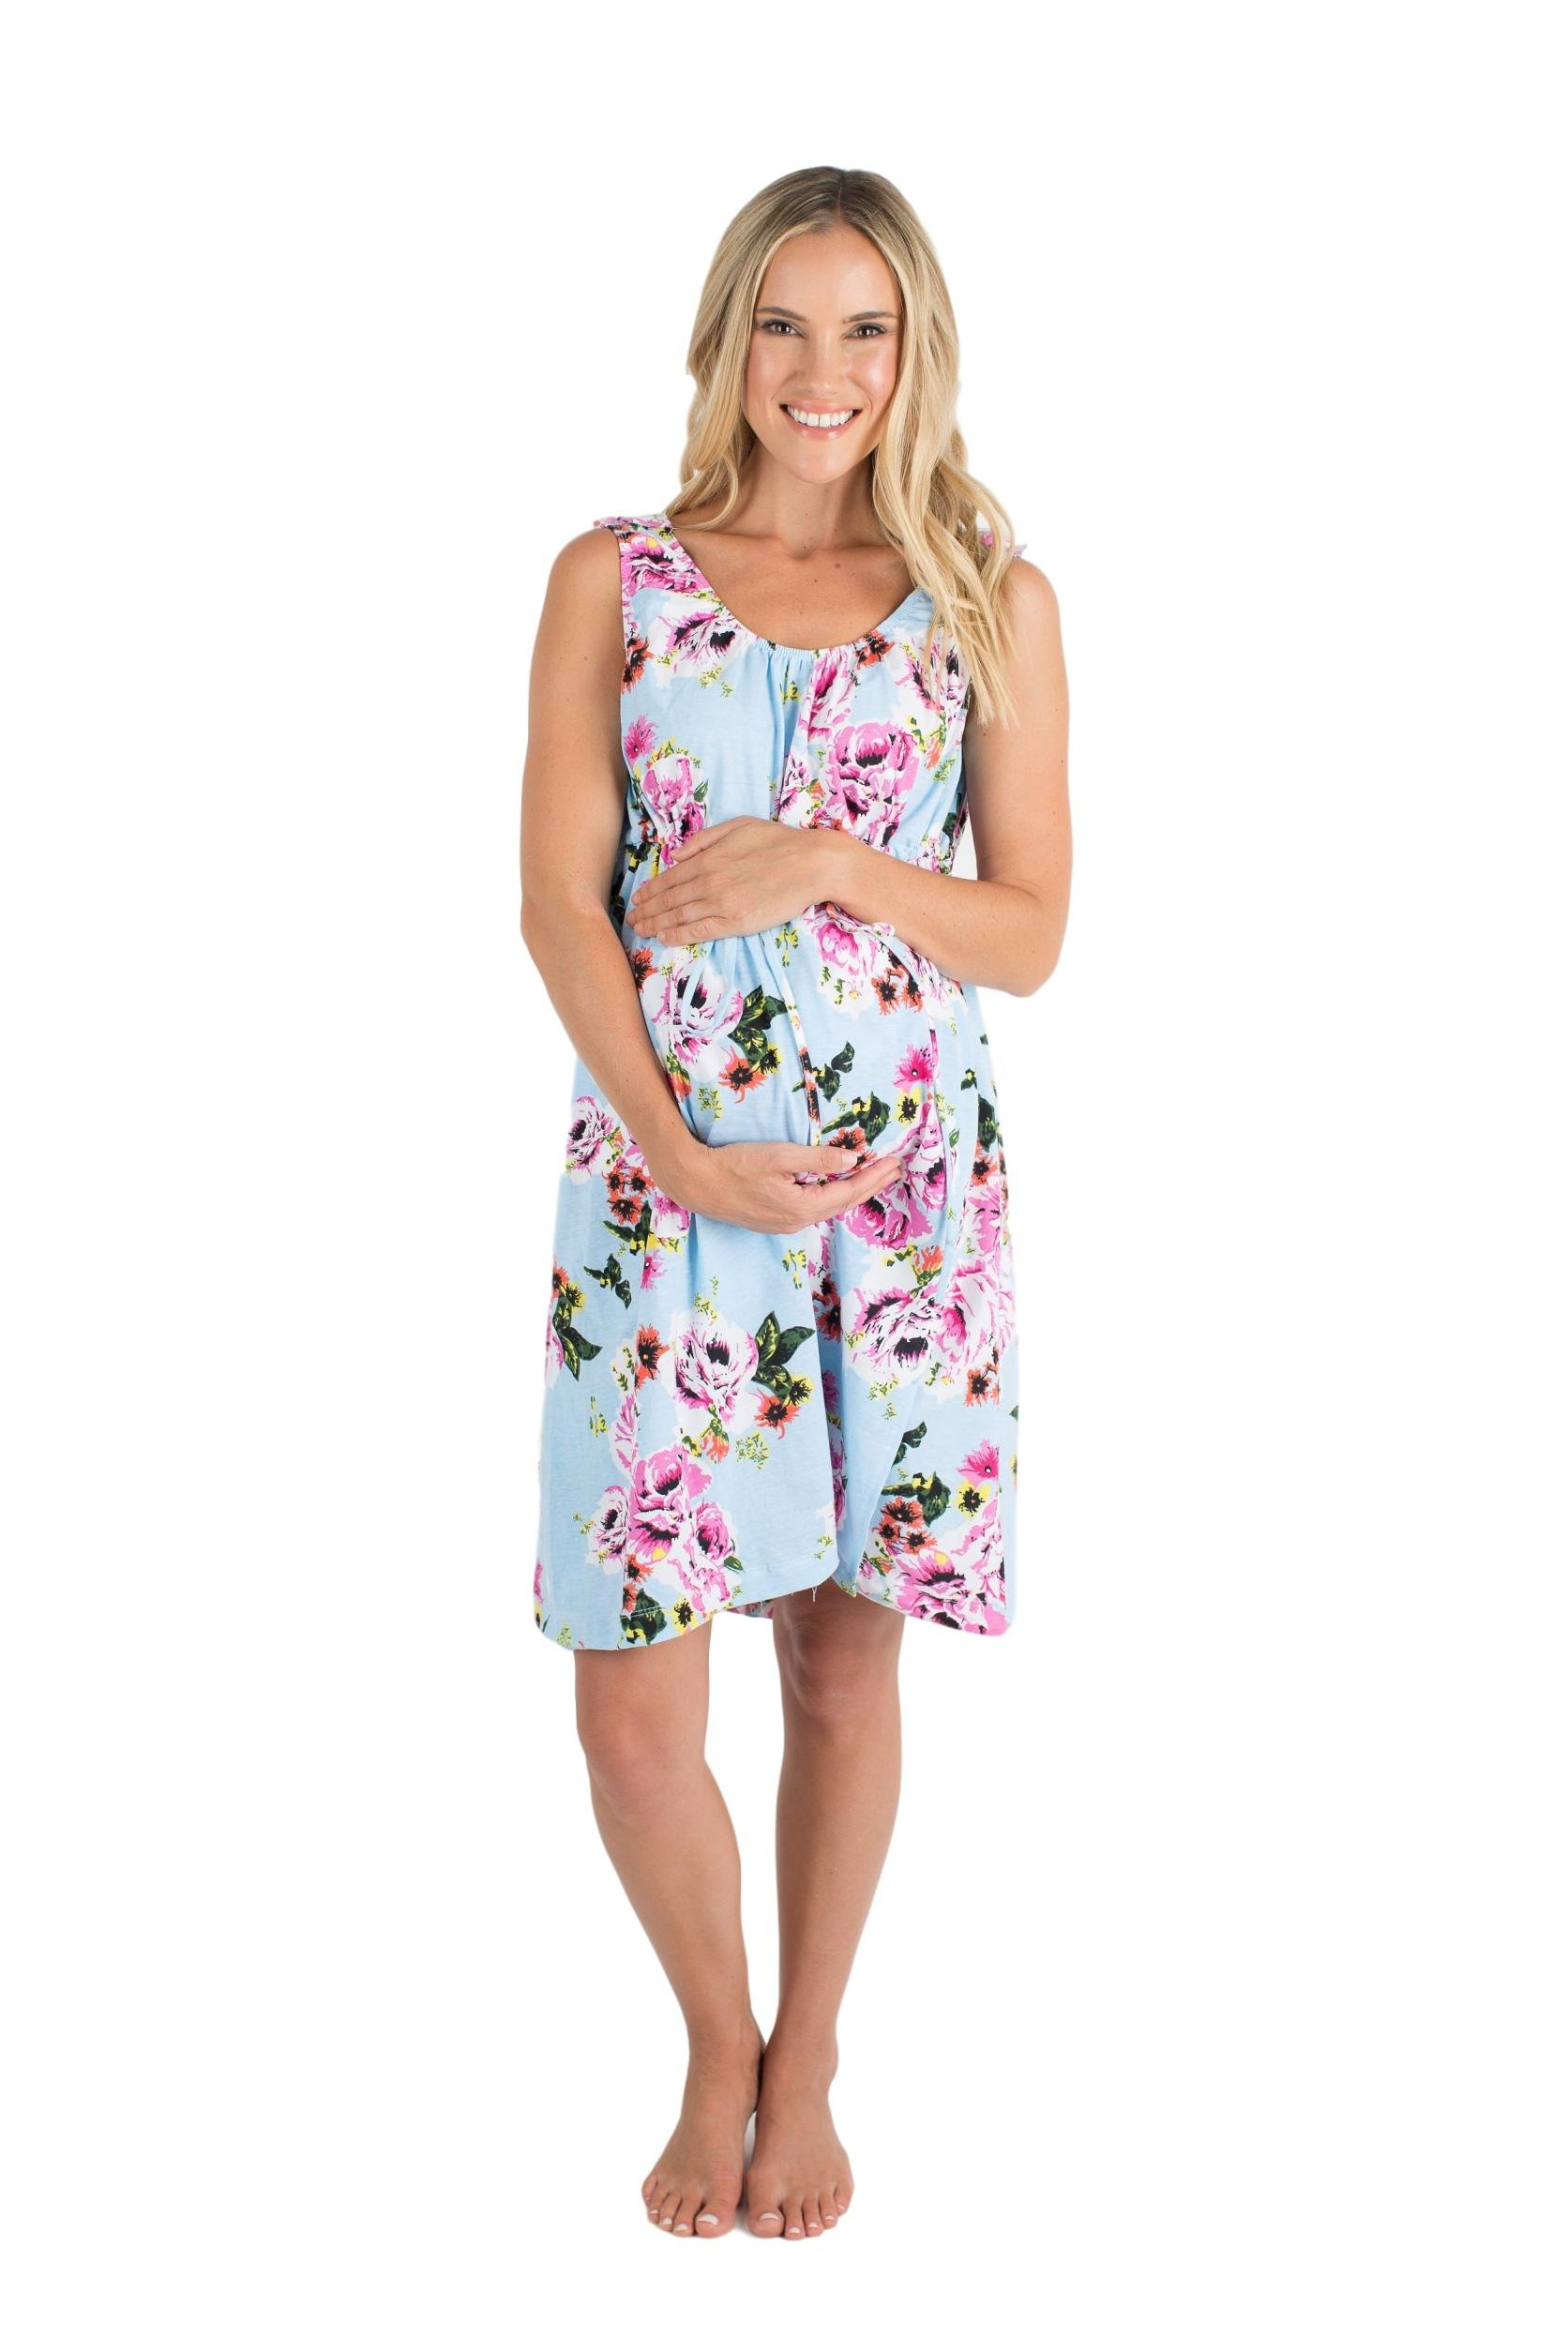 Baby Be Mine 3 in 1 Labor/Delivery / Nursing Hospital Gown Maternity,, Hospital Bag Must Have (S/M, Isla)